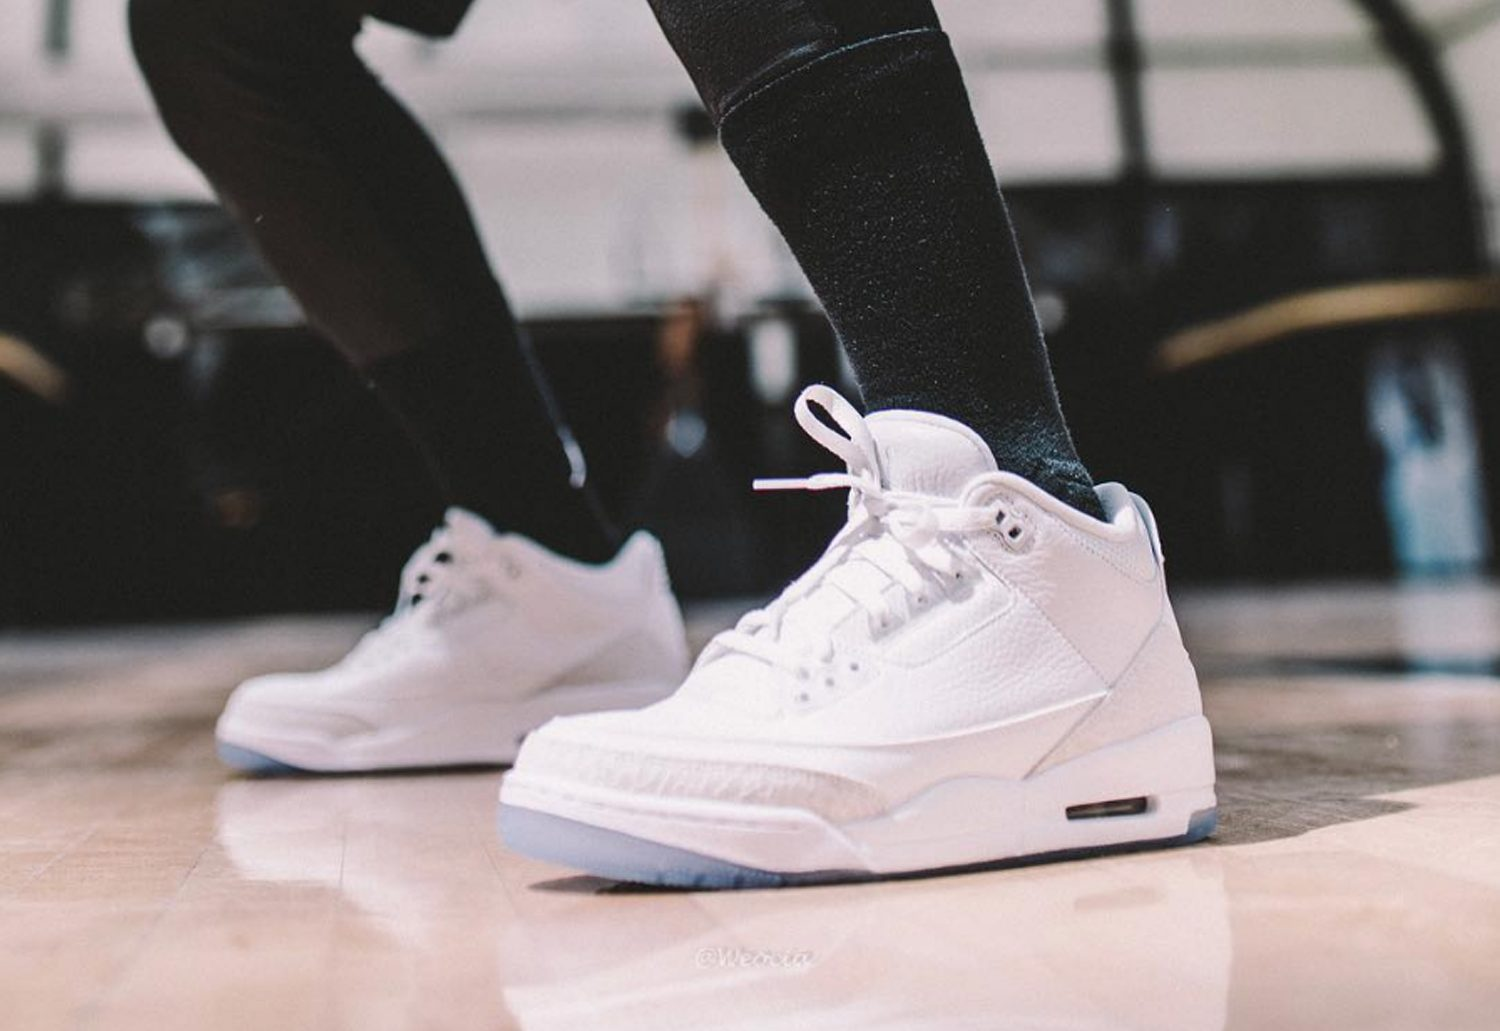 best sneakers a3425 12984 Another Look at the Upcoming Air Jordan 3 'Pure White ...